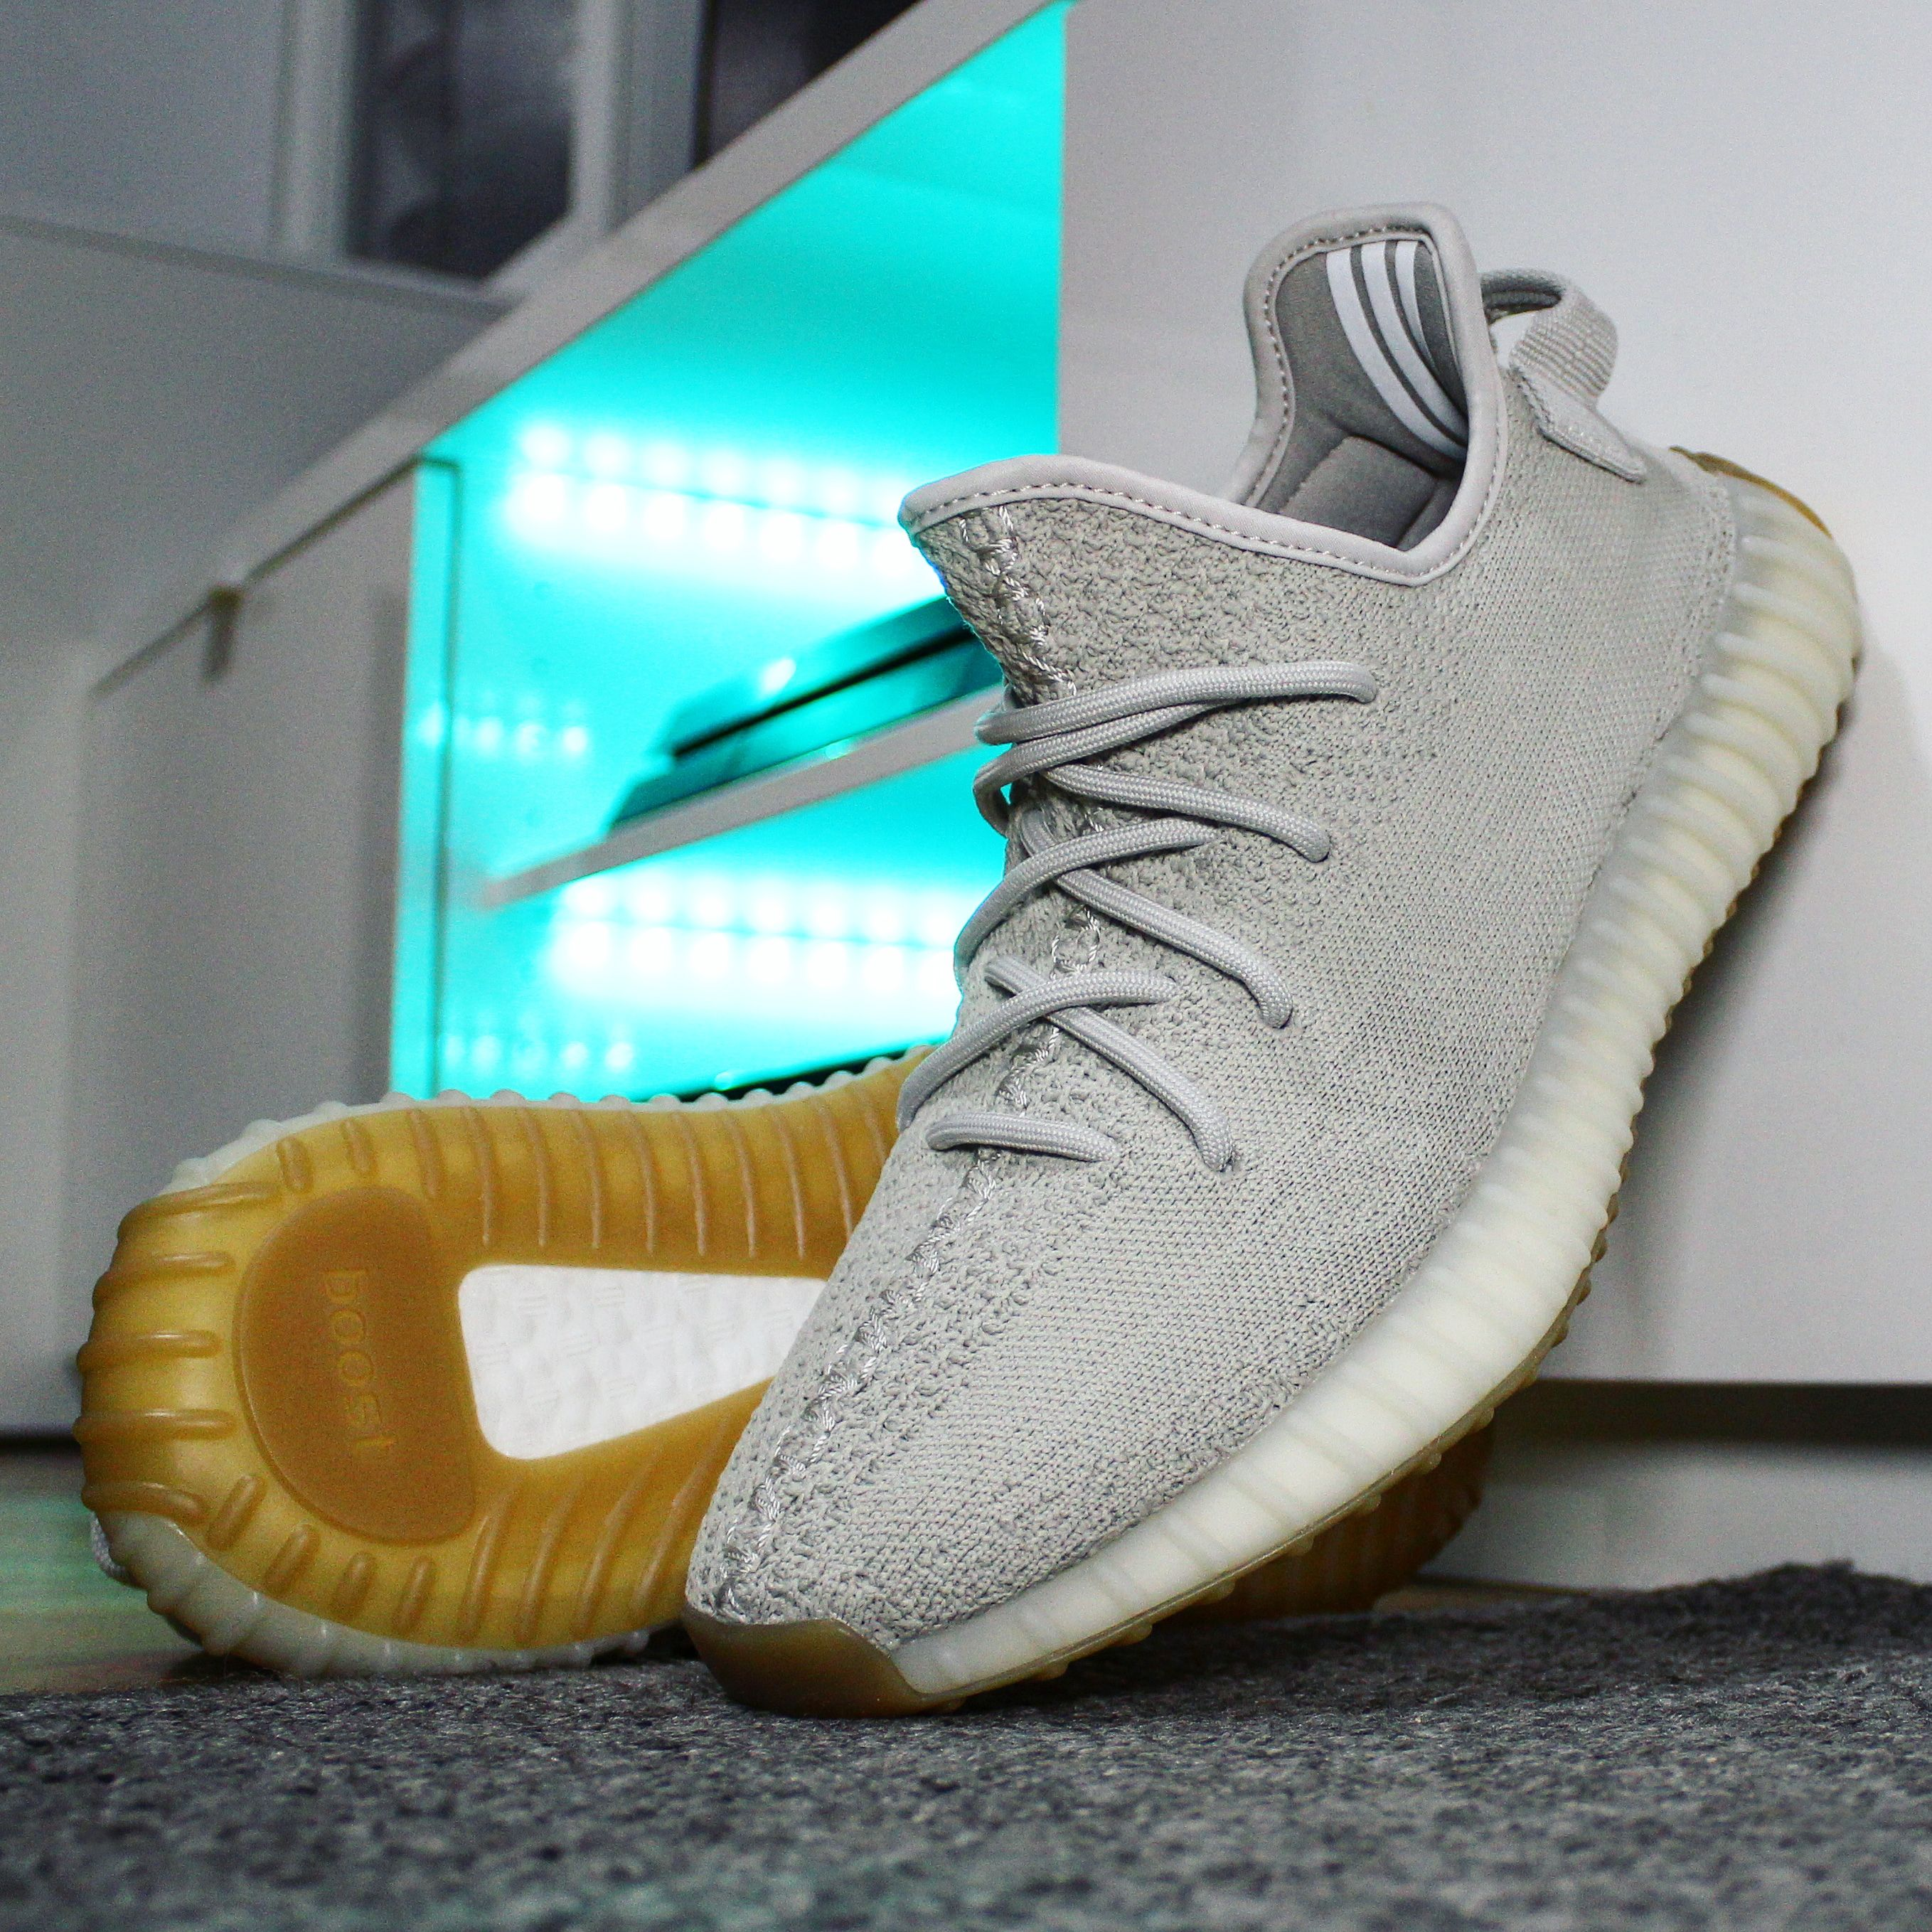 39f0c89d96f26 Tag a friend who will cop Go check out my adidas Yeezy Boost 350 V2   Sesame  on feet